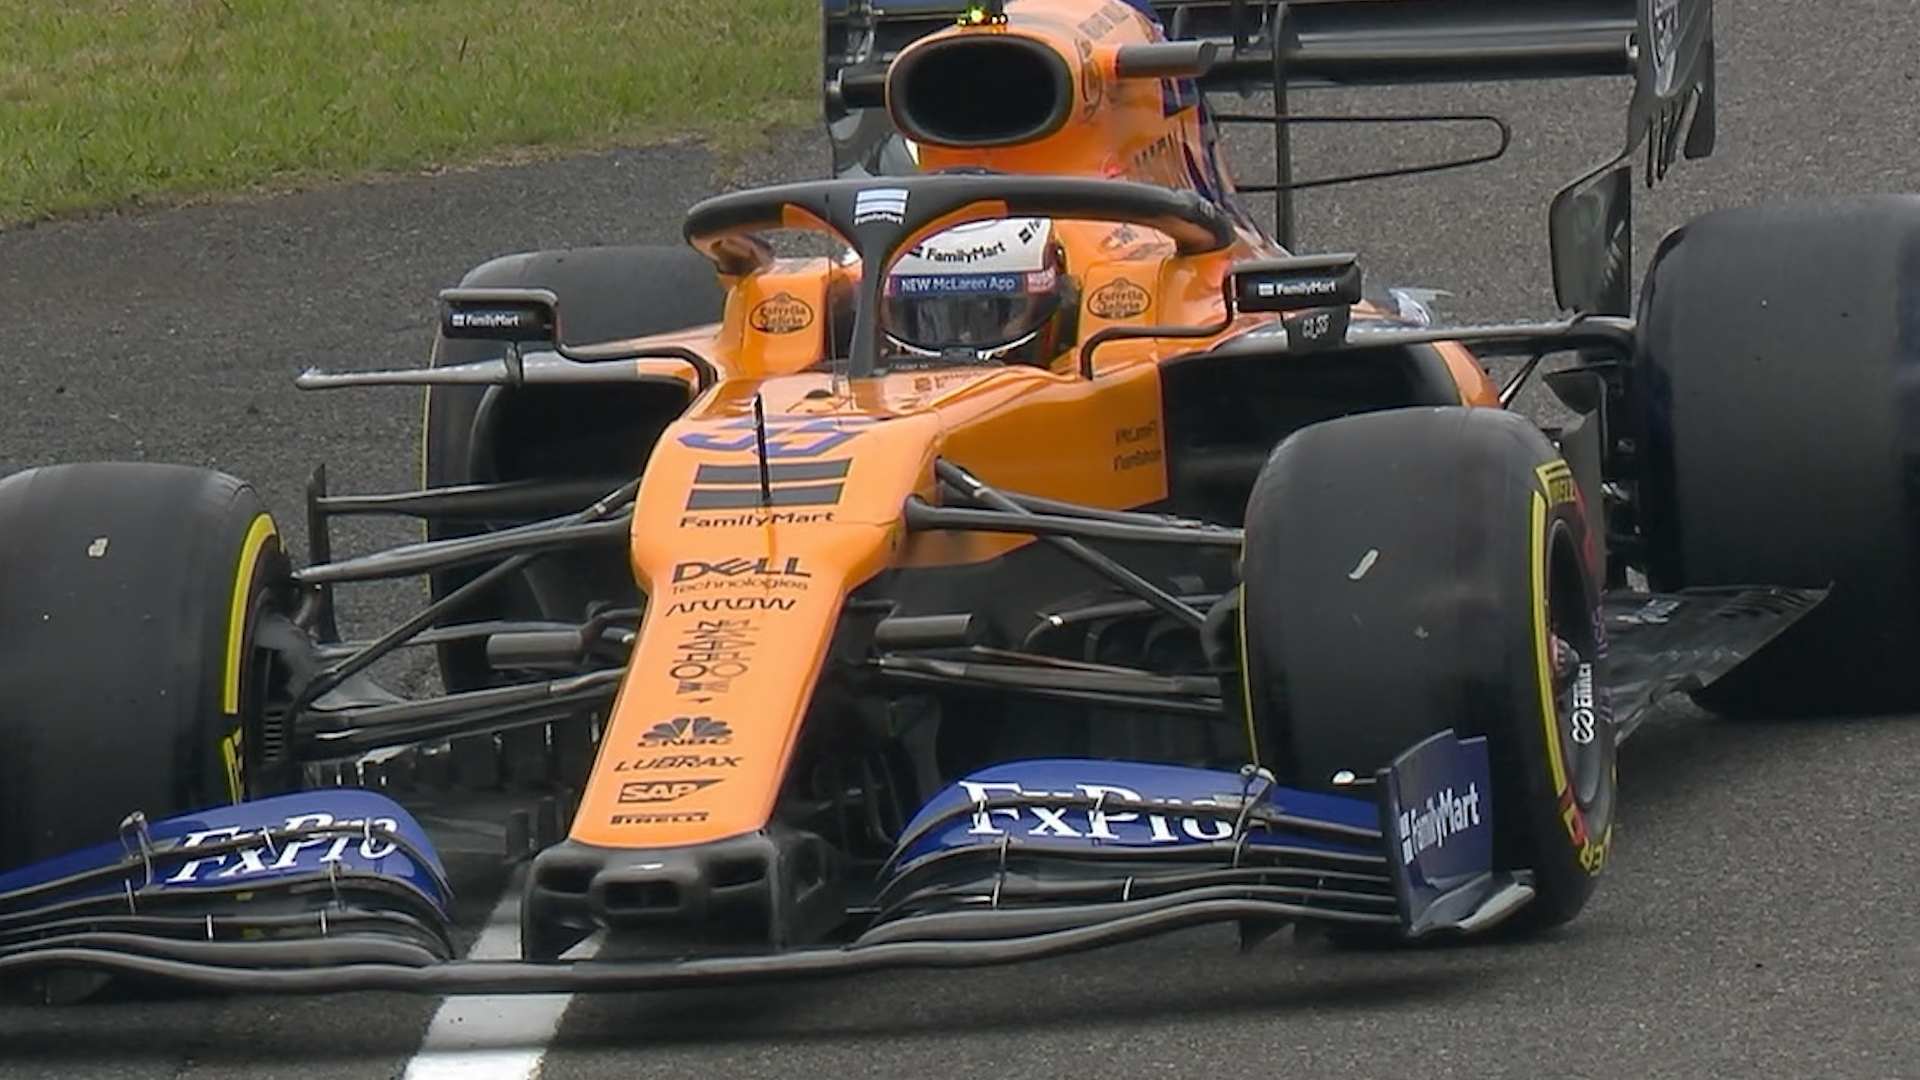 FP1: Sainz stops on track just after session start